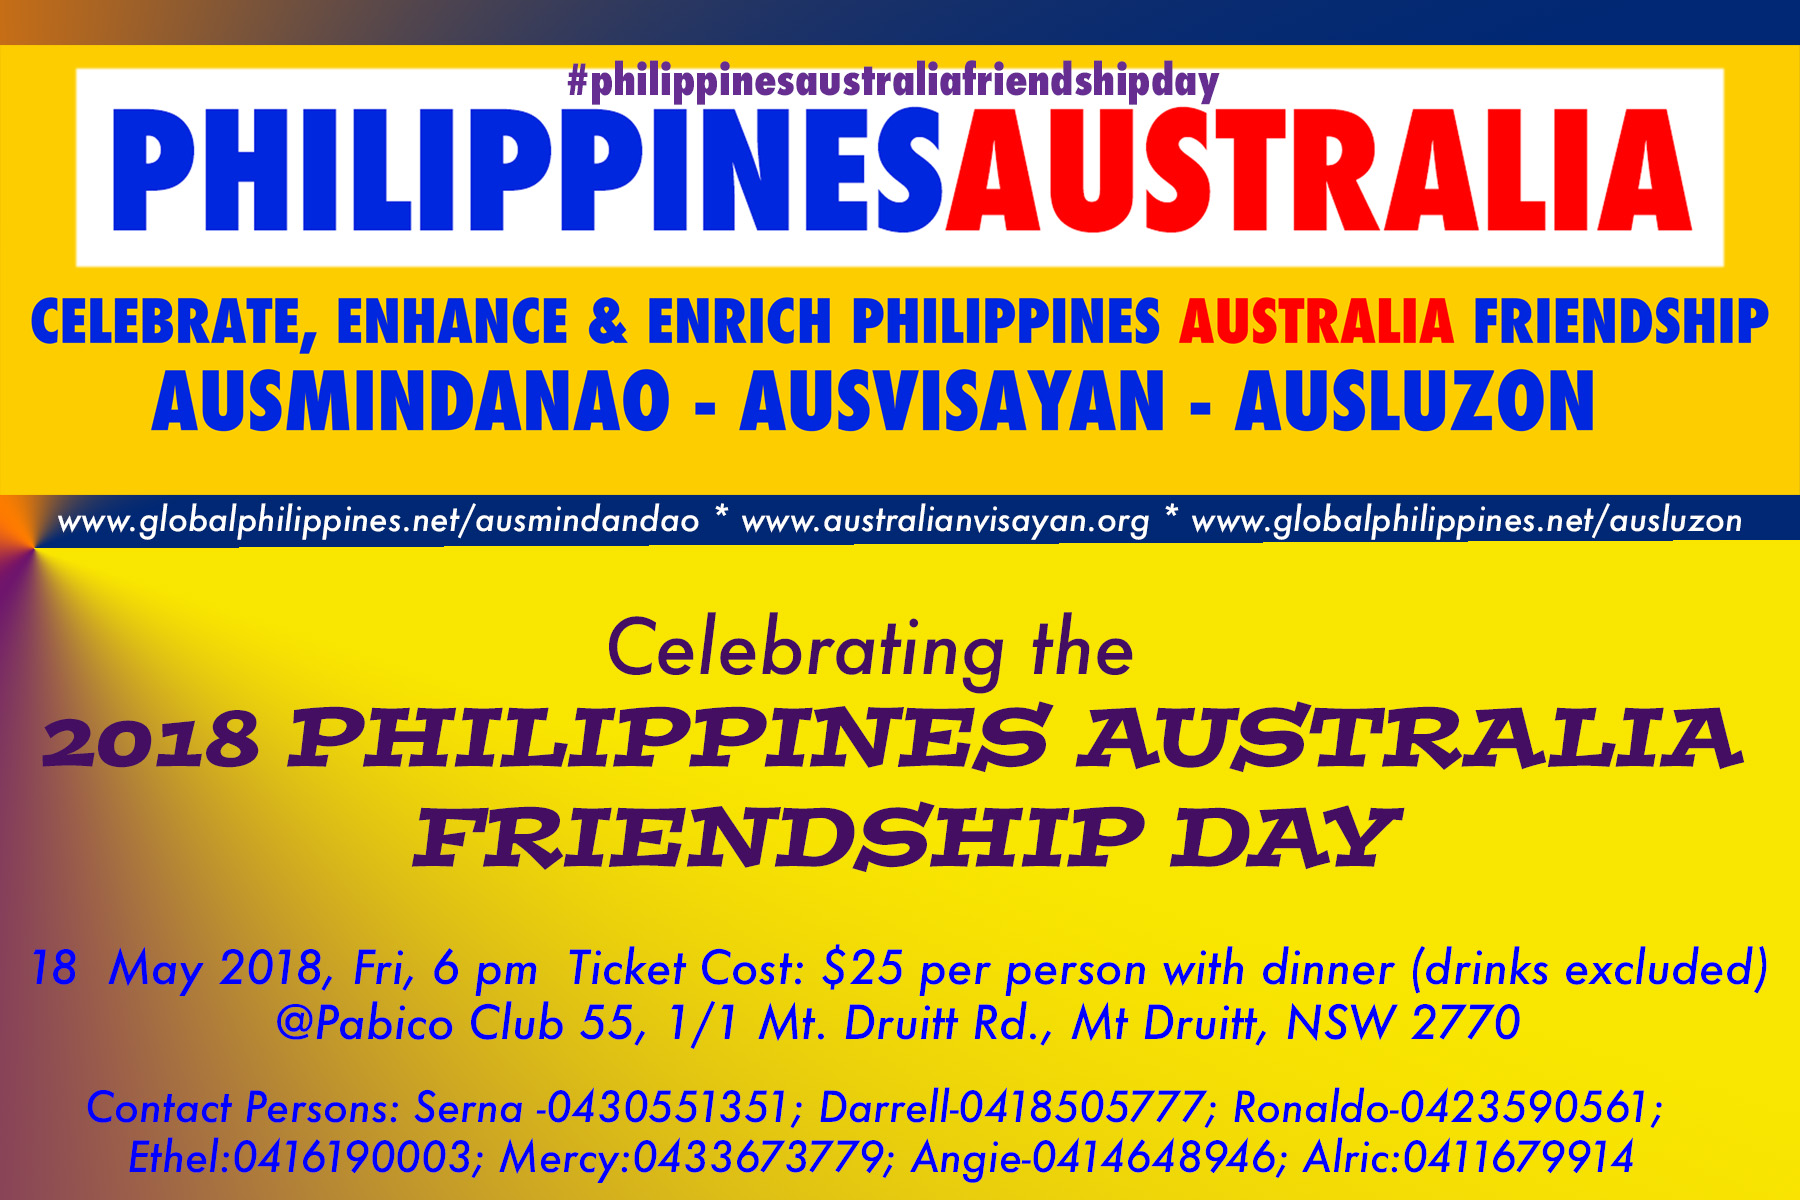 AUSLUZON-Philippines-Australia-Friendship-Day-2018